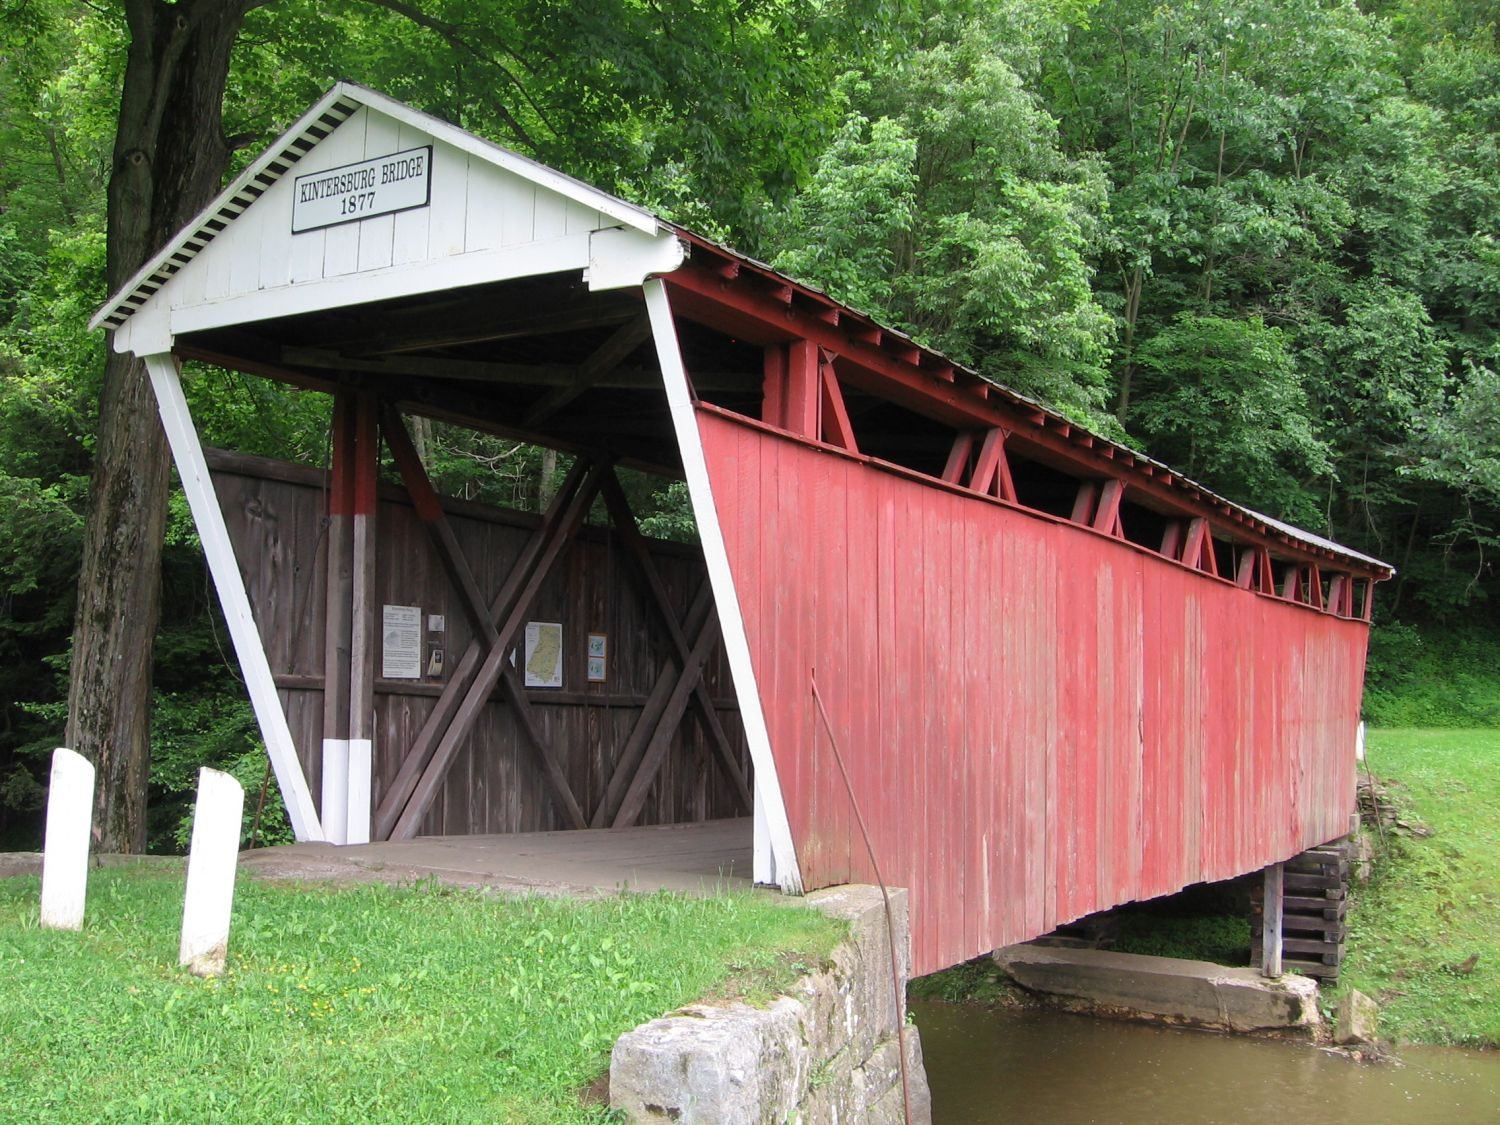 Kintersburg Covered Bridge - Photo Credit: By Mvincec - Own work, Public Domain, https://commons.wikimedia.org/w/index.php?curid=11875403